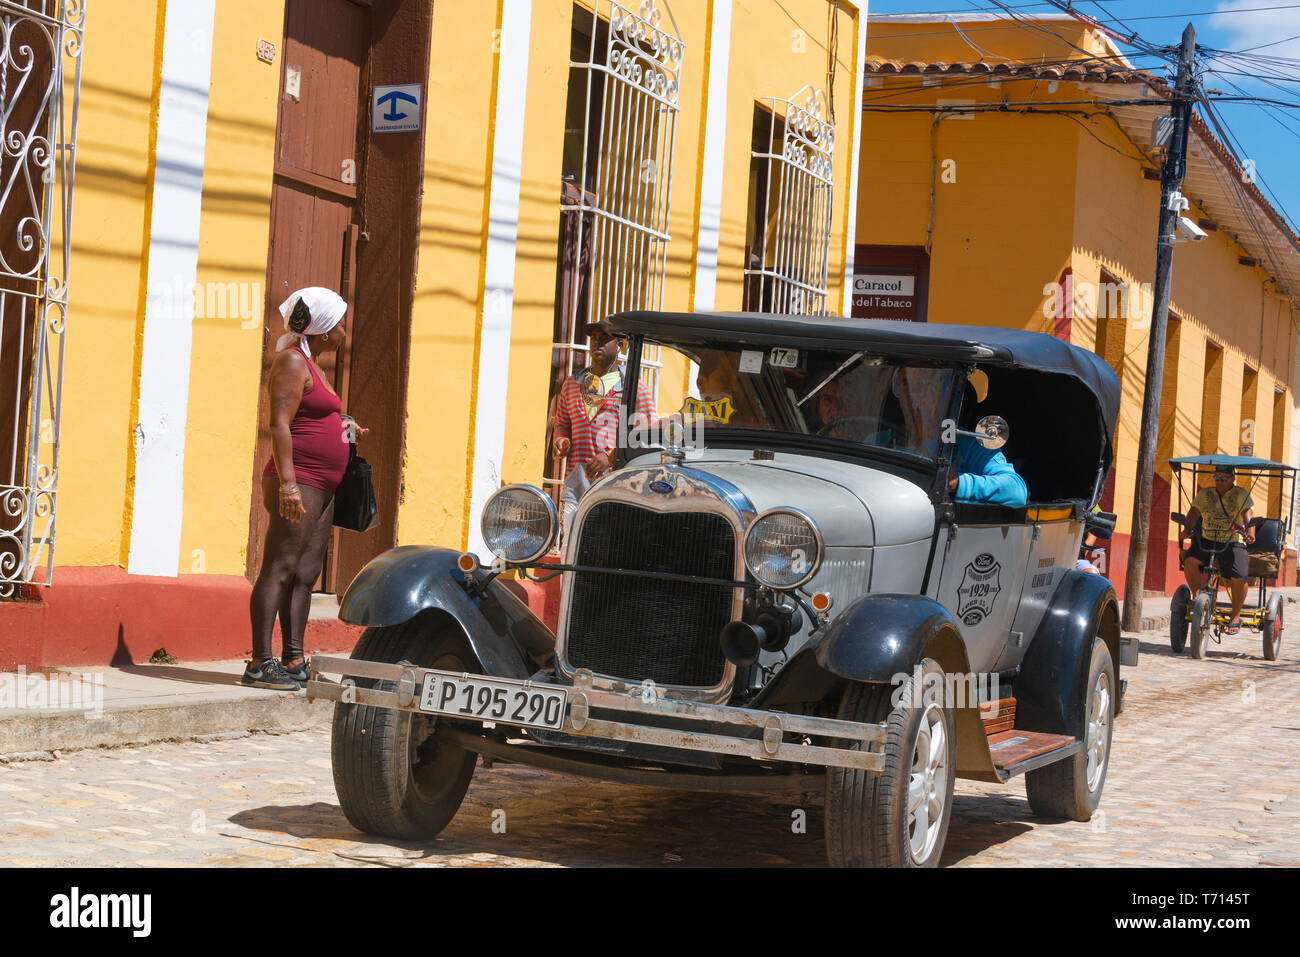 Colourful Classic American taxi driving along one of the cobblestone streets in colonial town of Trinidad,  Cuba, Caribbean - Stock Image